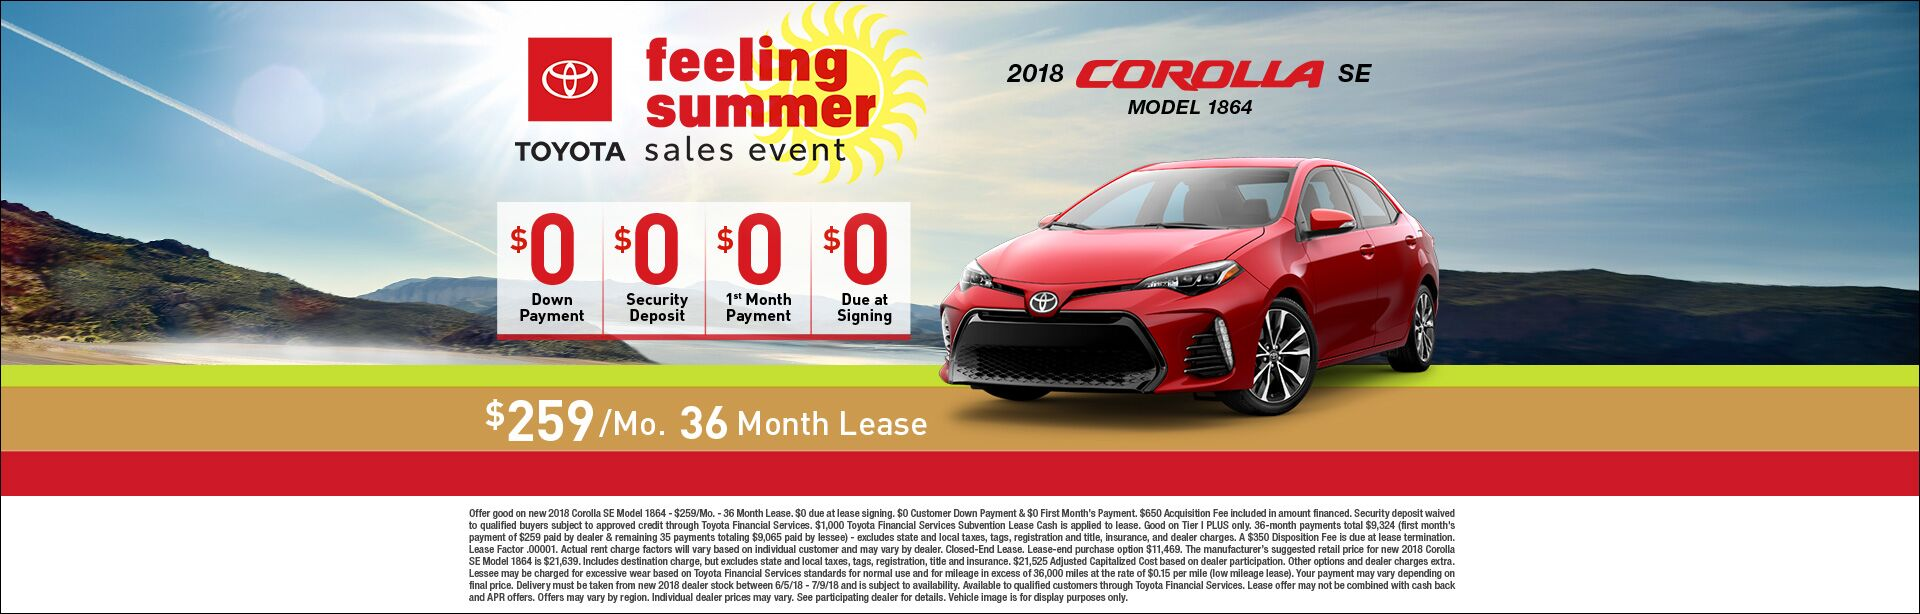 Feeling Summer Corolla Lease